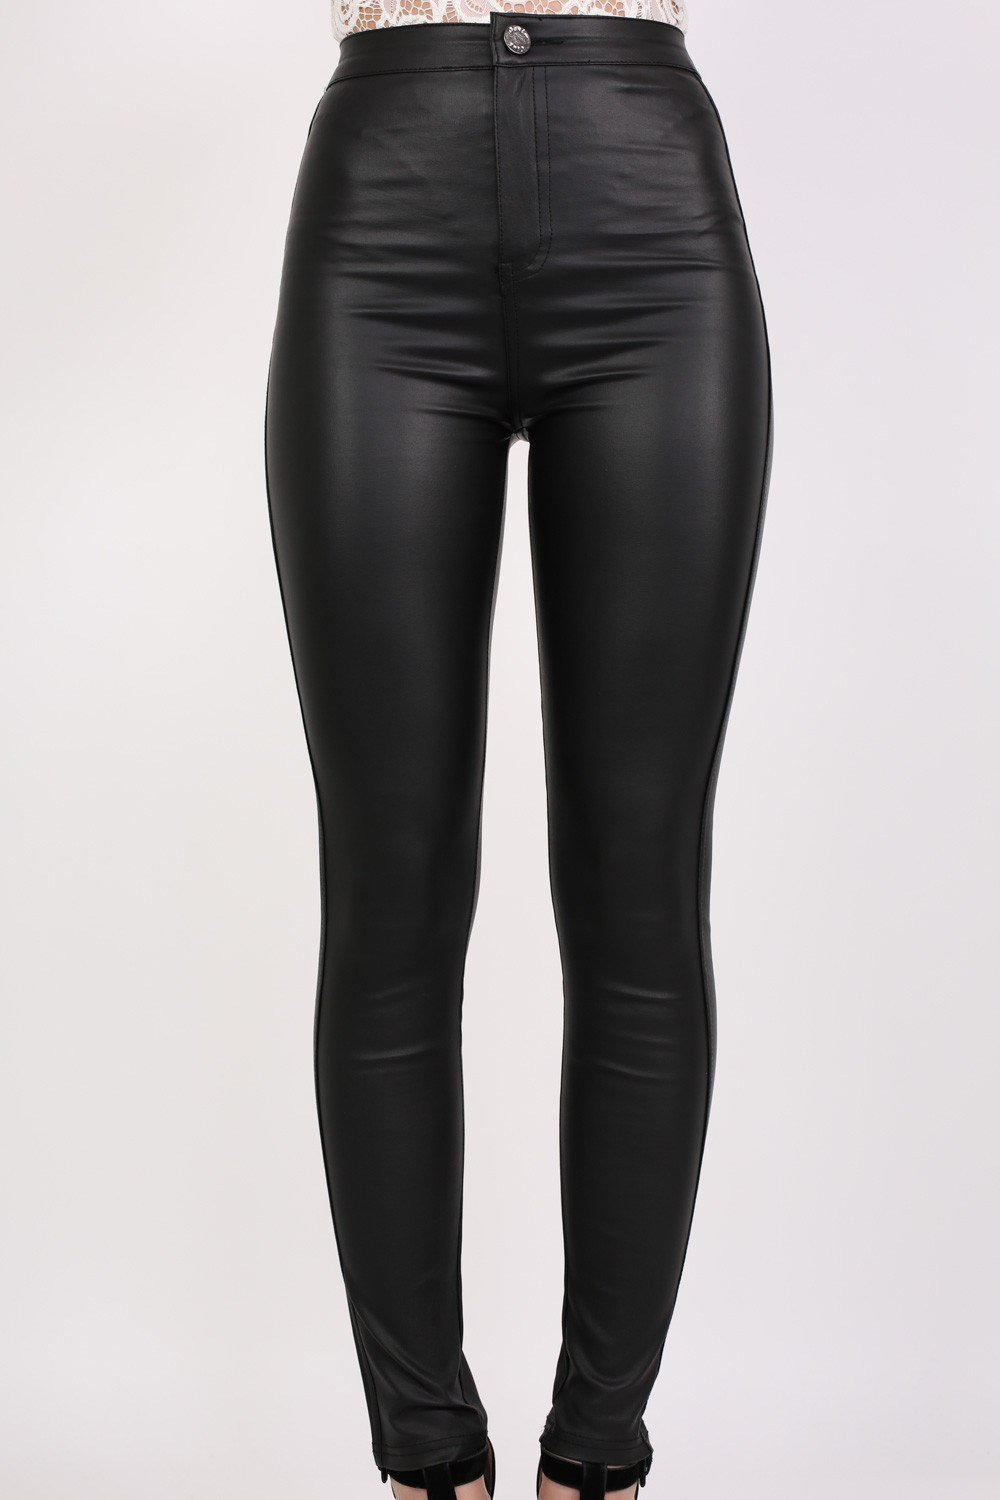 71834675a45588 Faux Leather High Waisted Skinny Fit Trousers in Black – PilotLondon.com